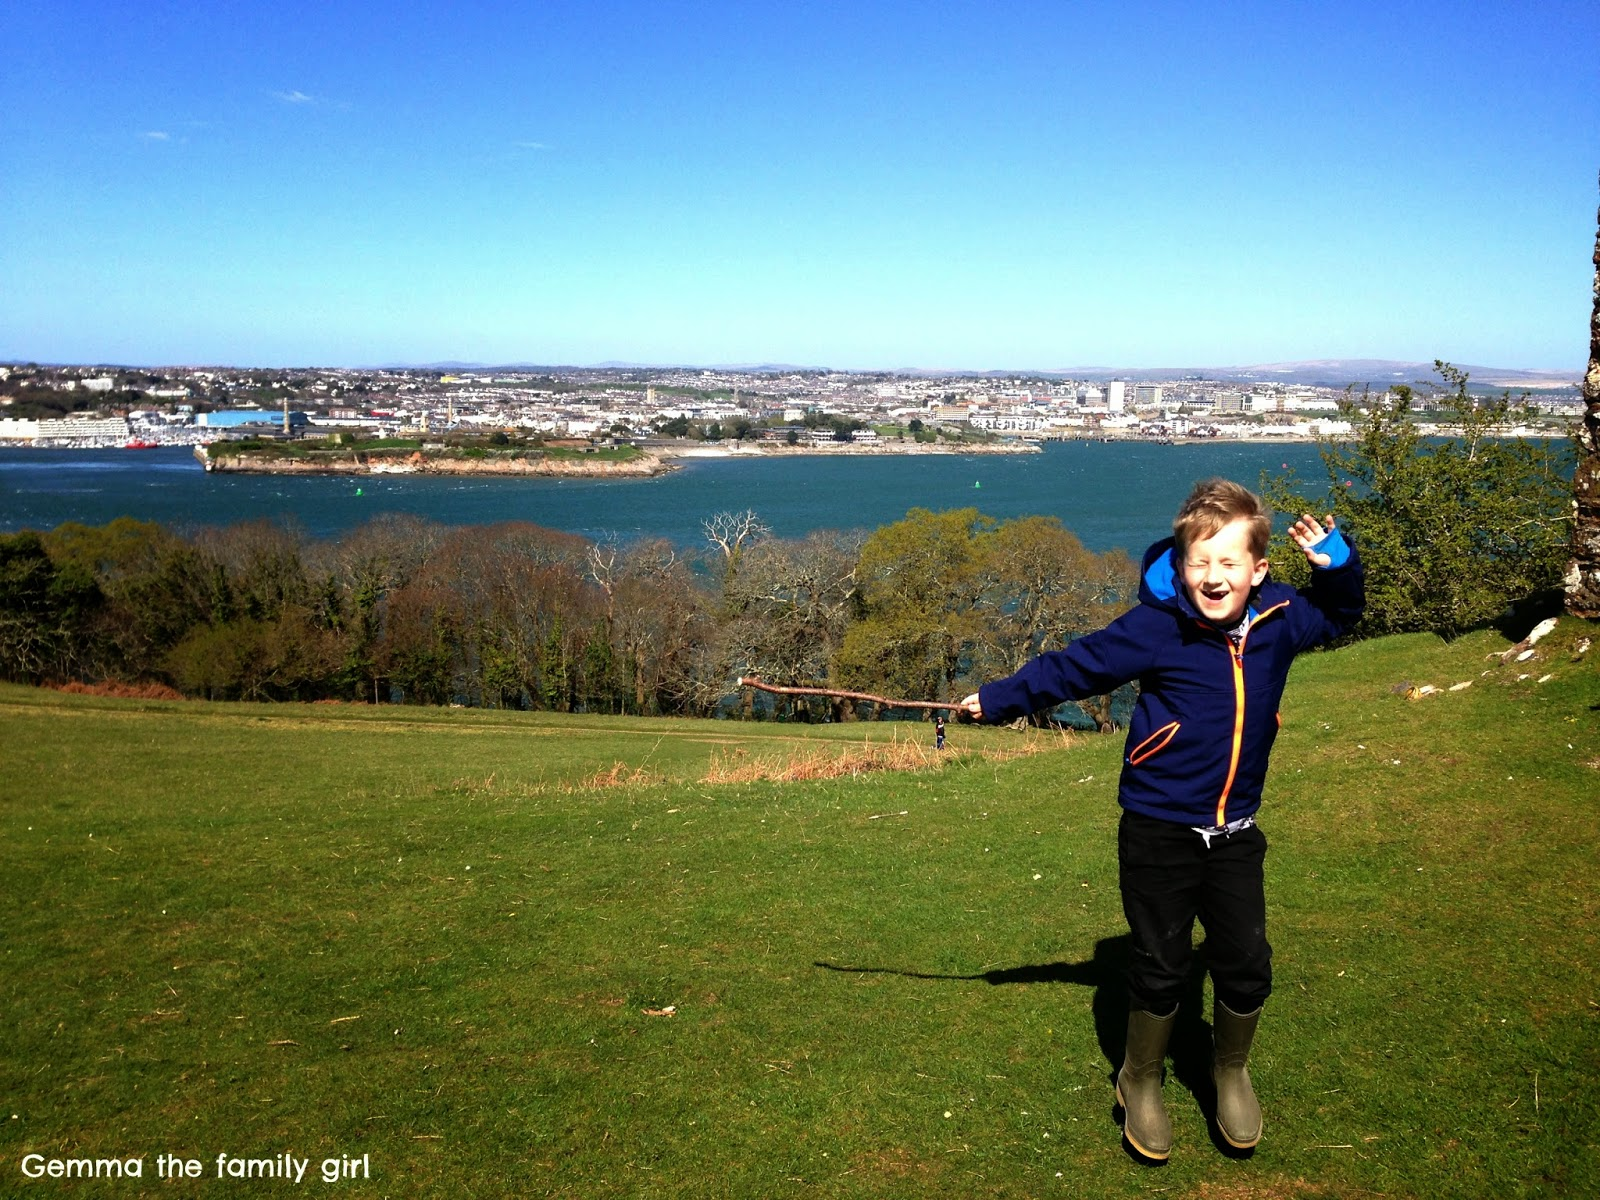 harry, potter, spells, magic, wingardium leviosa, levitating, plymouth, mount, edgcumbe, cornwall, photo, photography, parent, blog, blogger